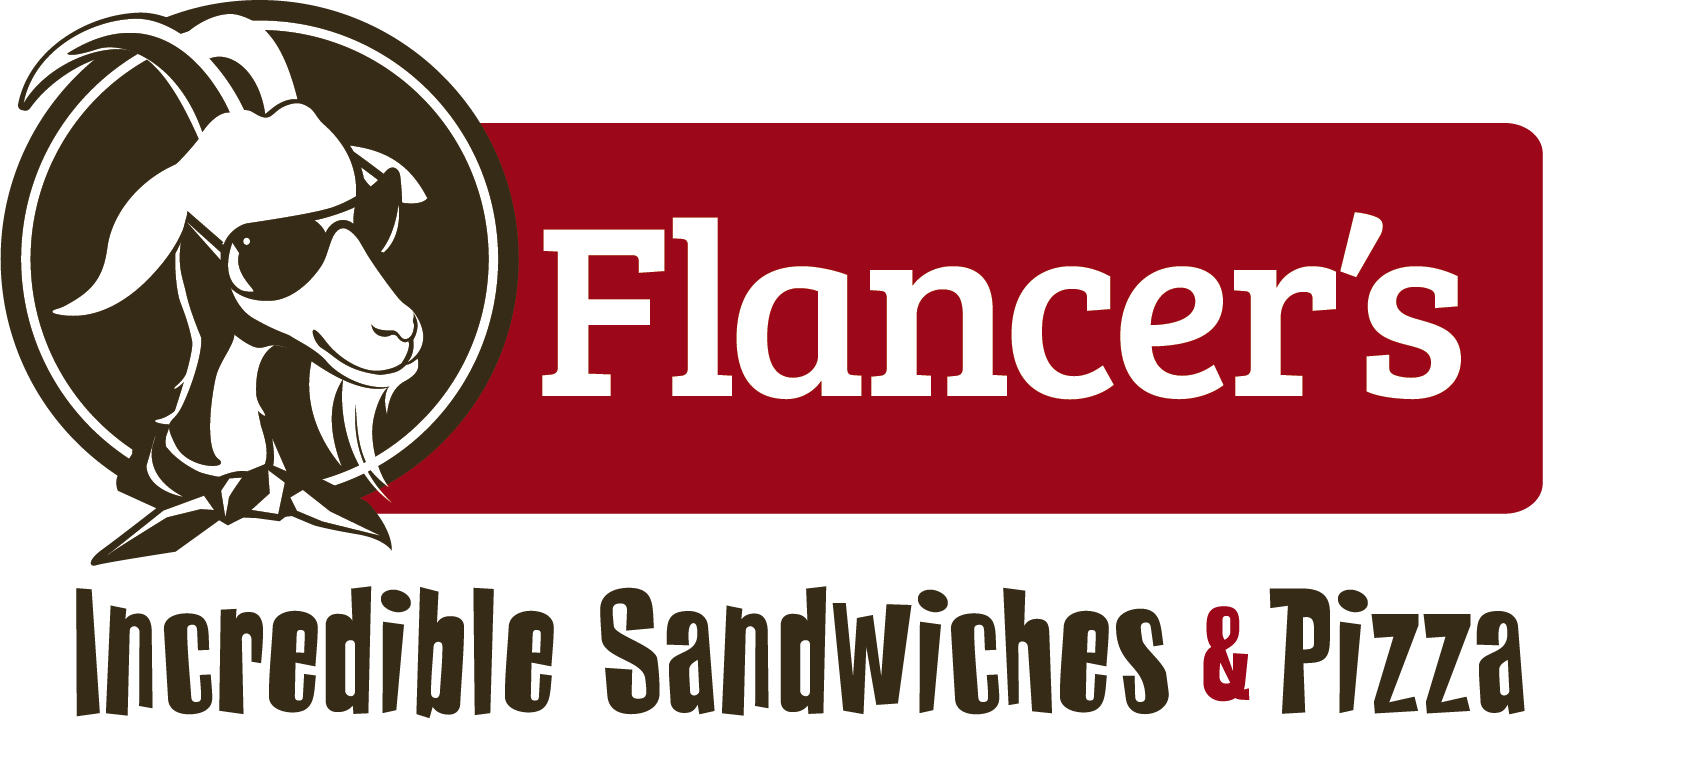 Flancer's Incredible Sandwiches & Pizza Celebrates 20 Years in Gilbert, AZ